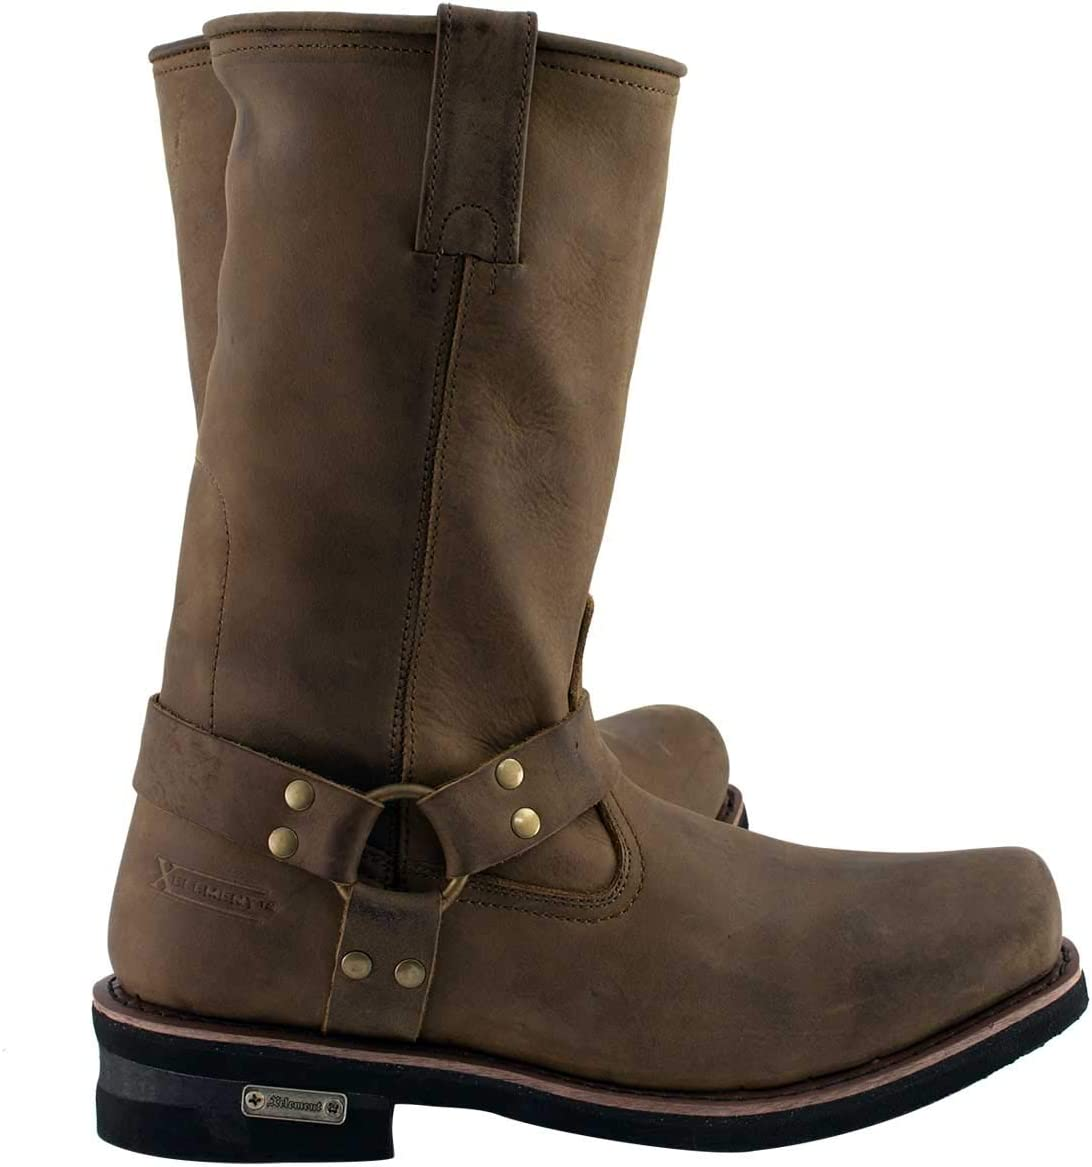 Xelement 1556 Crazy Horse Mens Brown Harness Motorcycle Boots 9